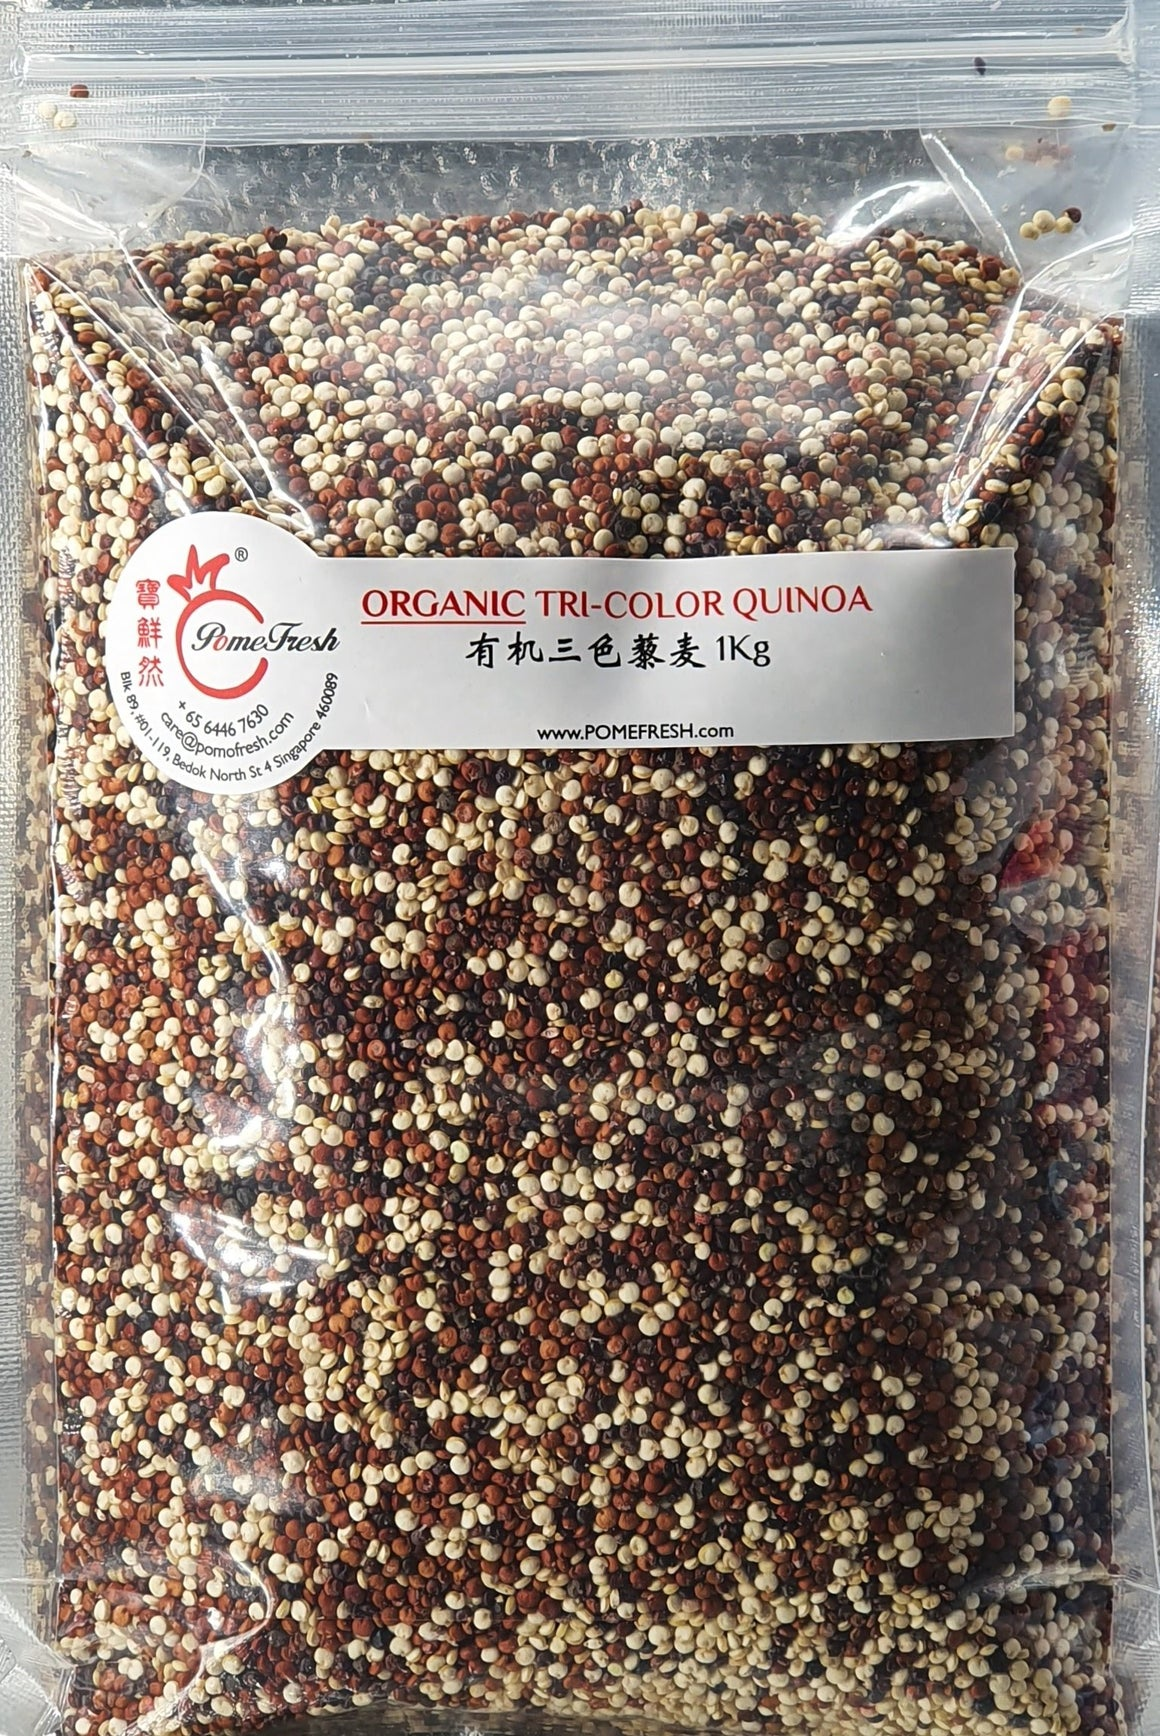 ORGANIC TRI-COLOR QUINOA 有机三色藜麦 1Kg [FREE Postal Delivery]